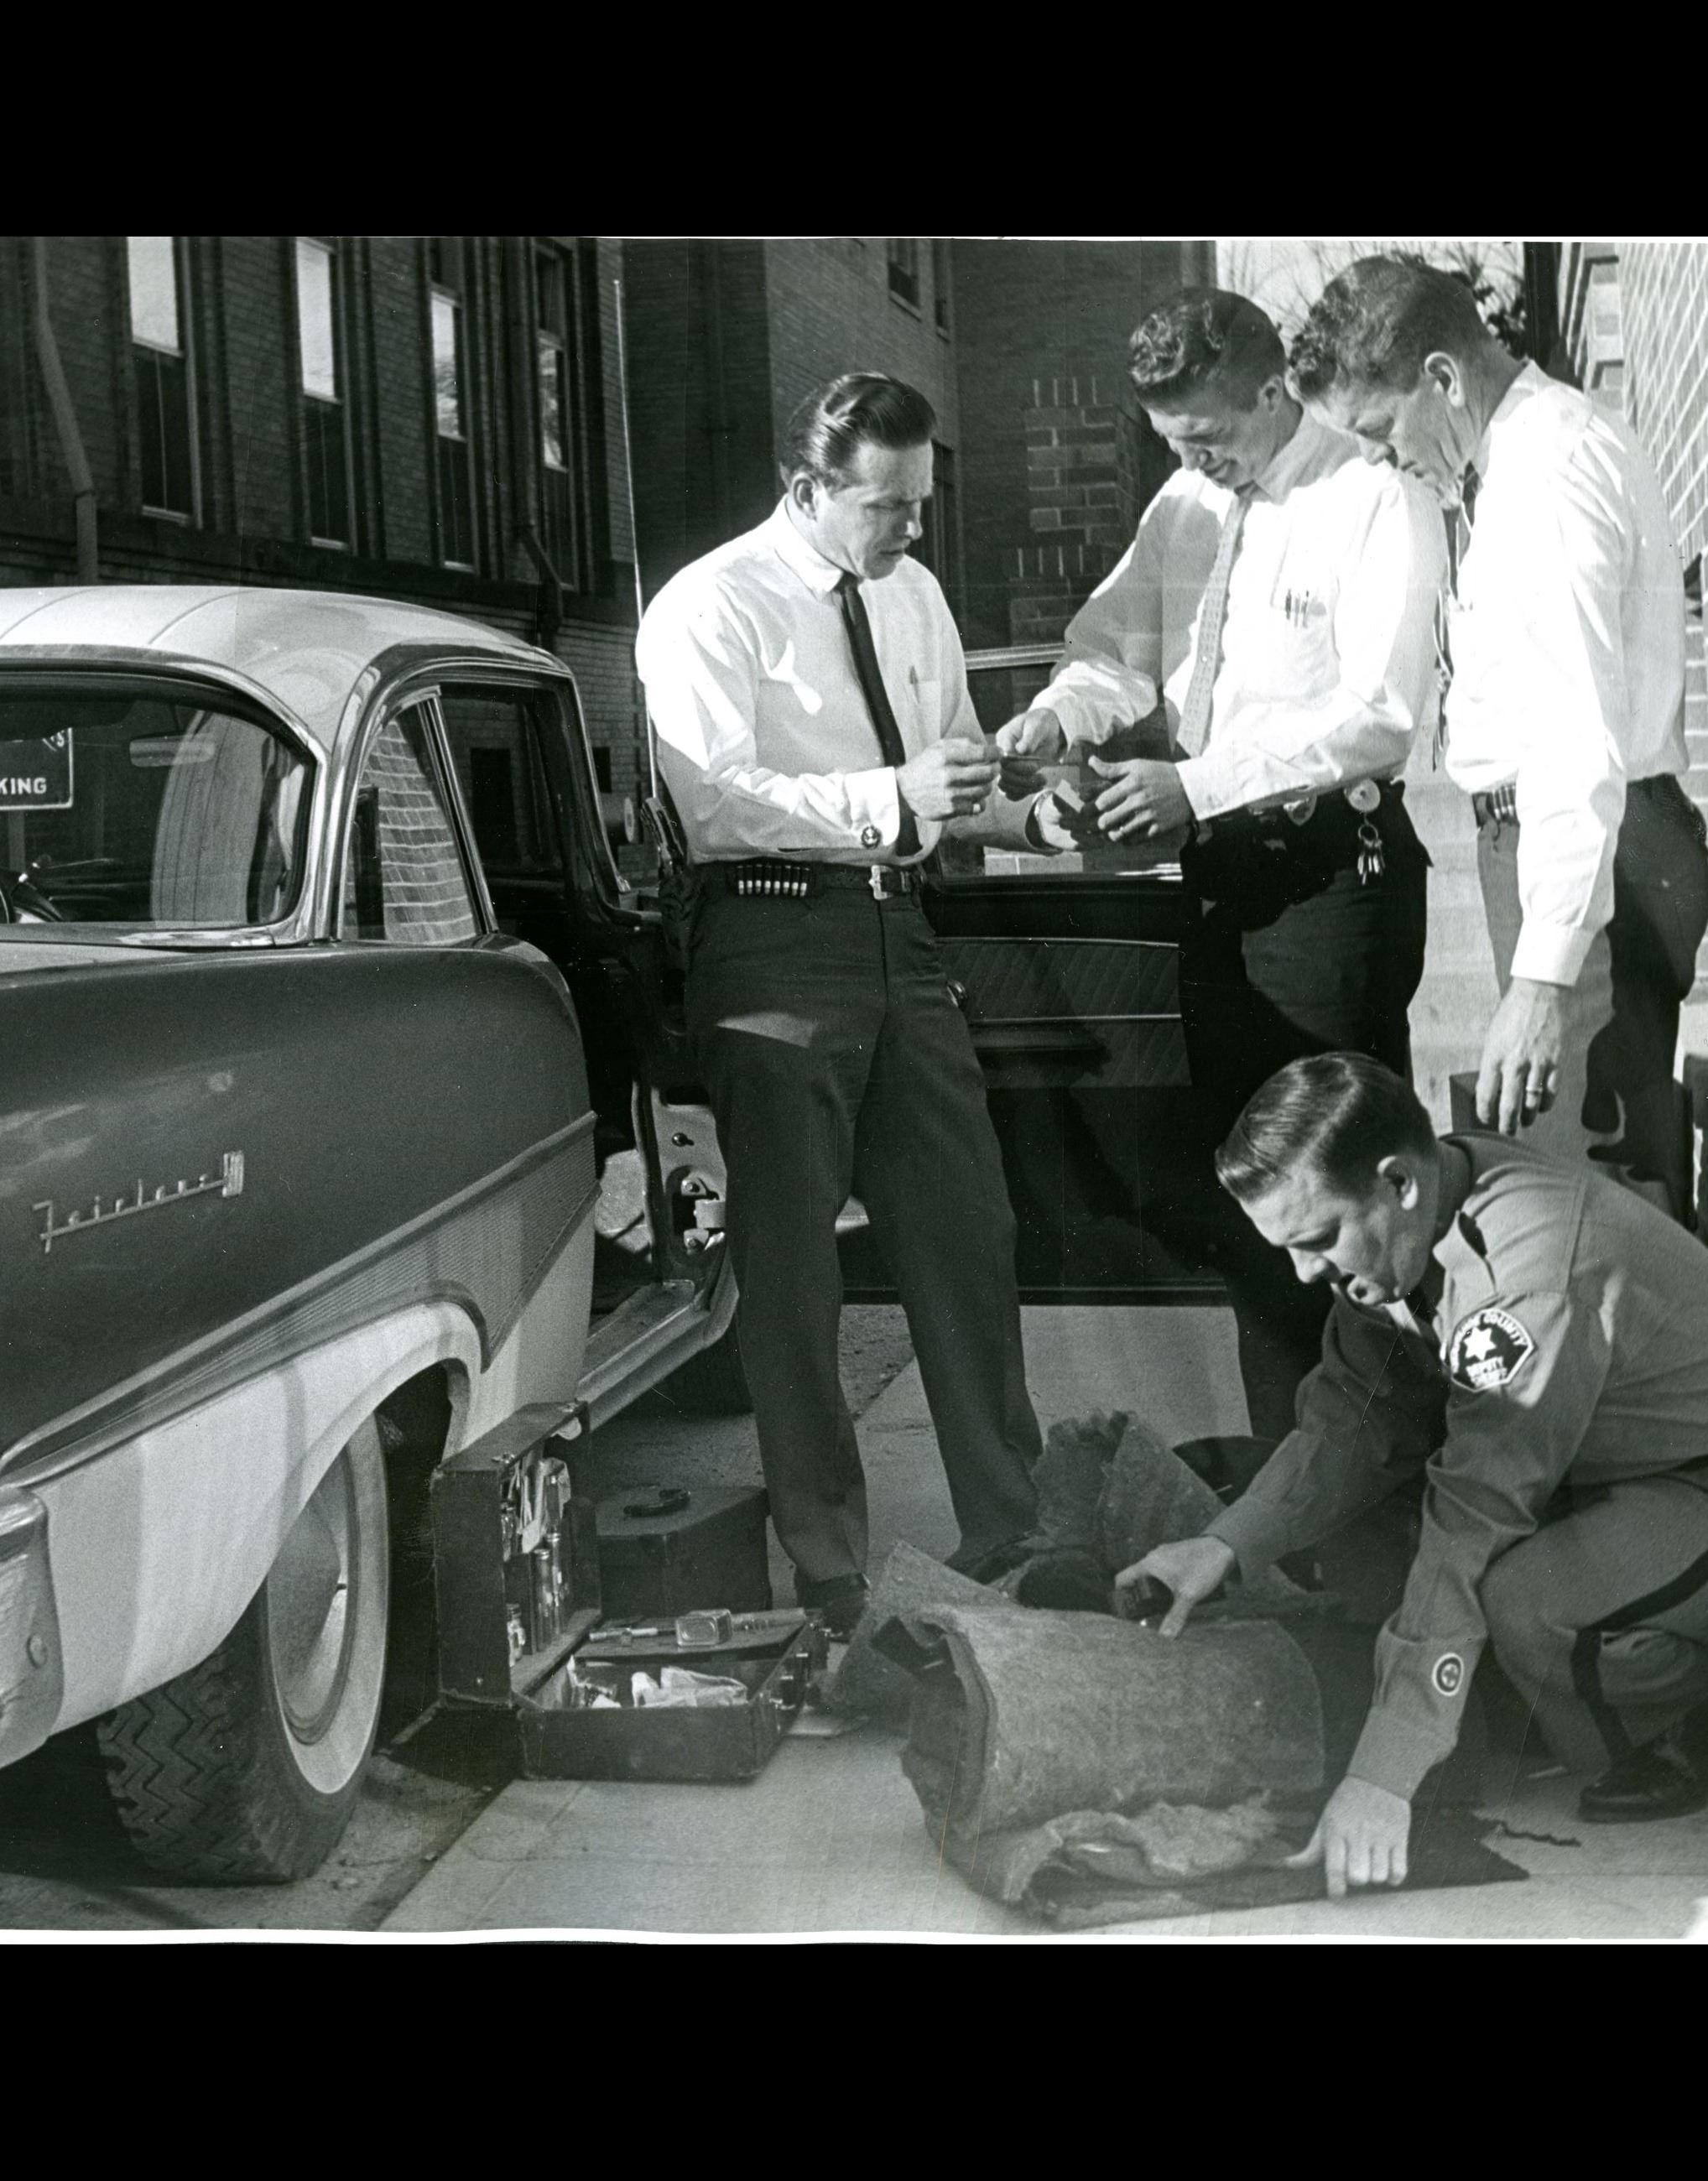 ACSO Investigators and ID Tech process a vehicle at Littleton H.Q. Dec 1961